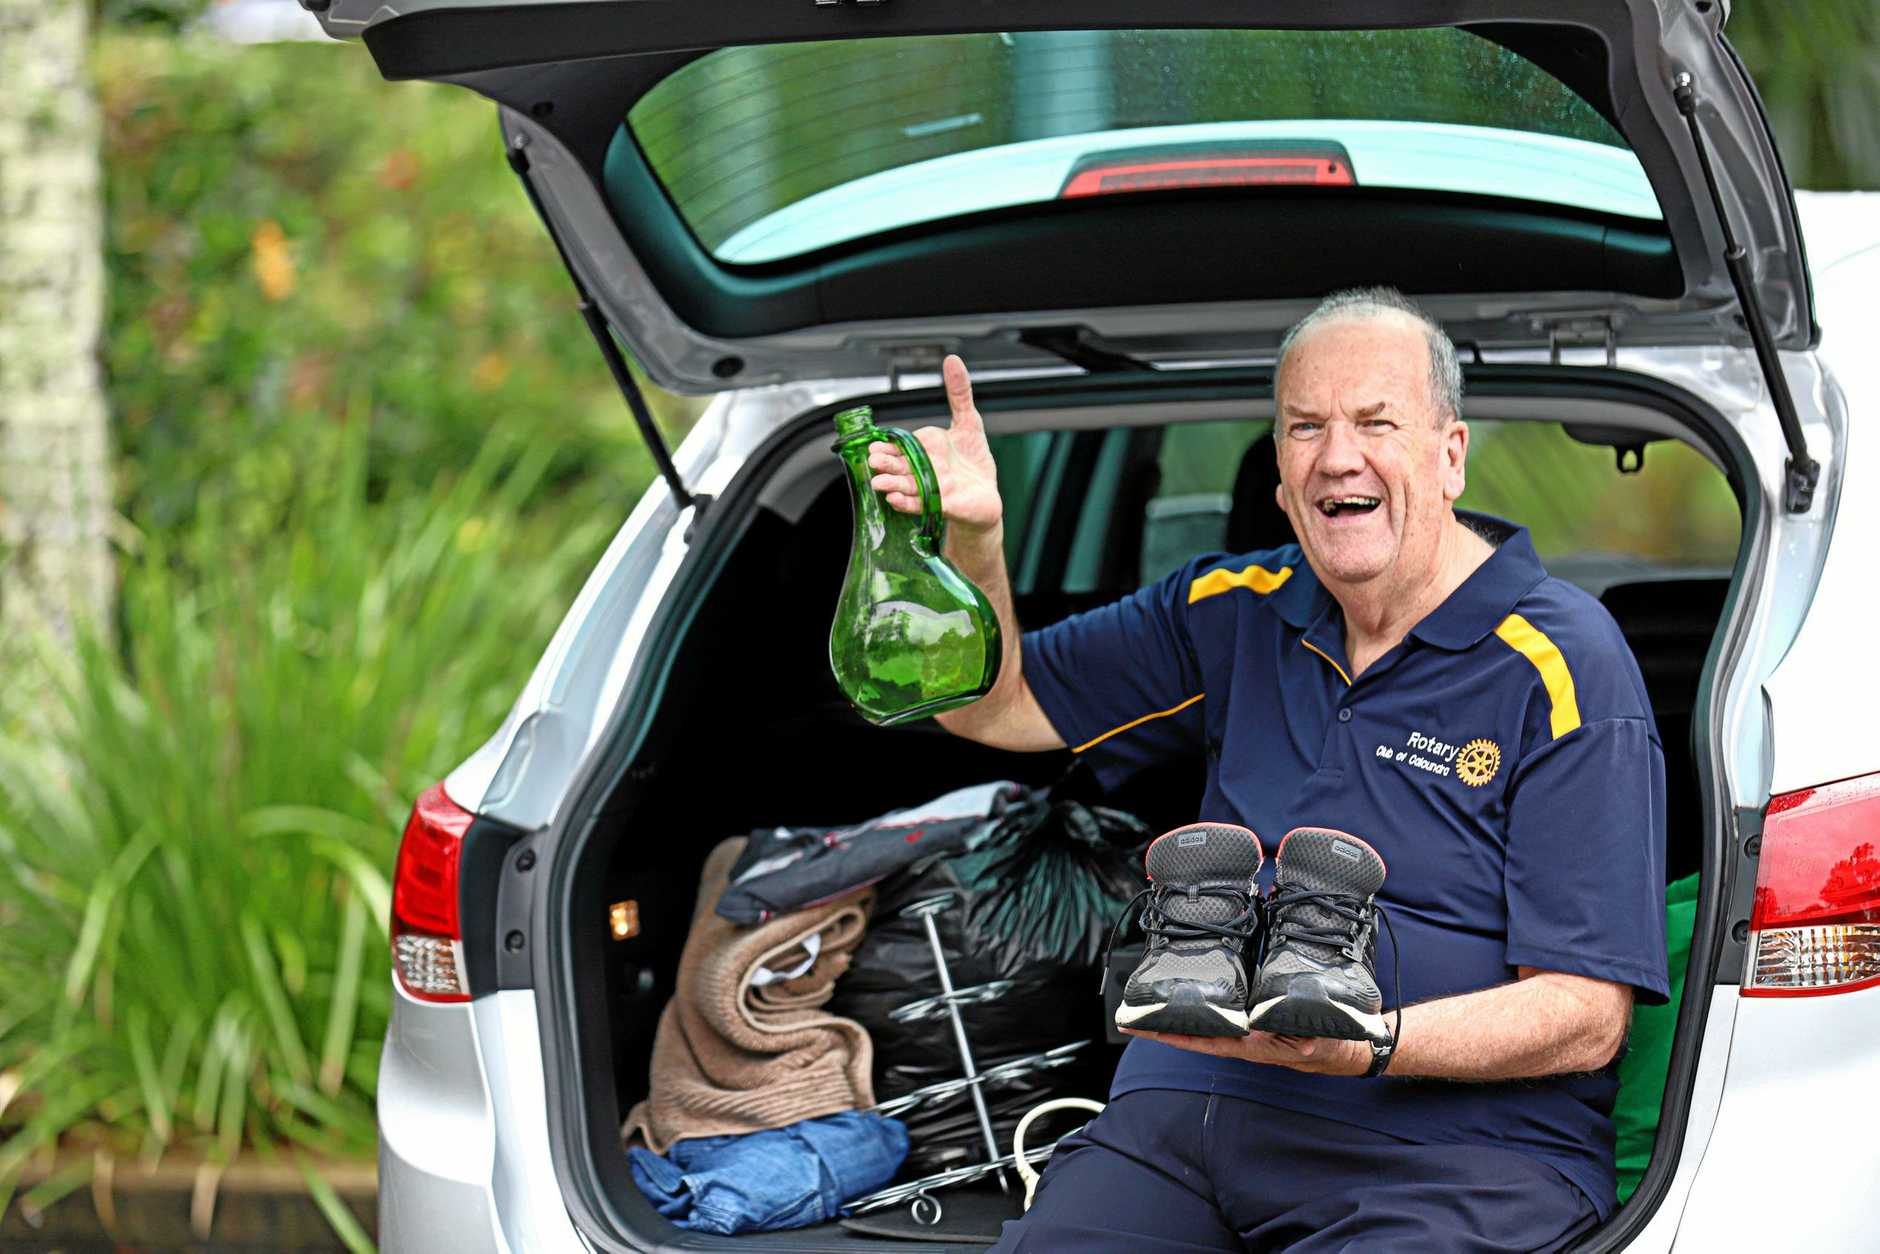 CASH CAR: Rotary Club Caloundra's first car boot sale to raise money for community projects will be held Saturday, June 1 in the Caloundra Salvation Army car park.